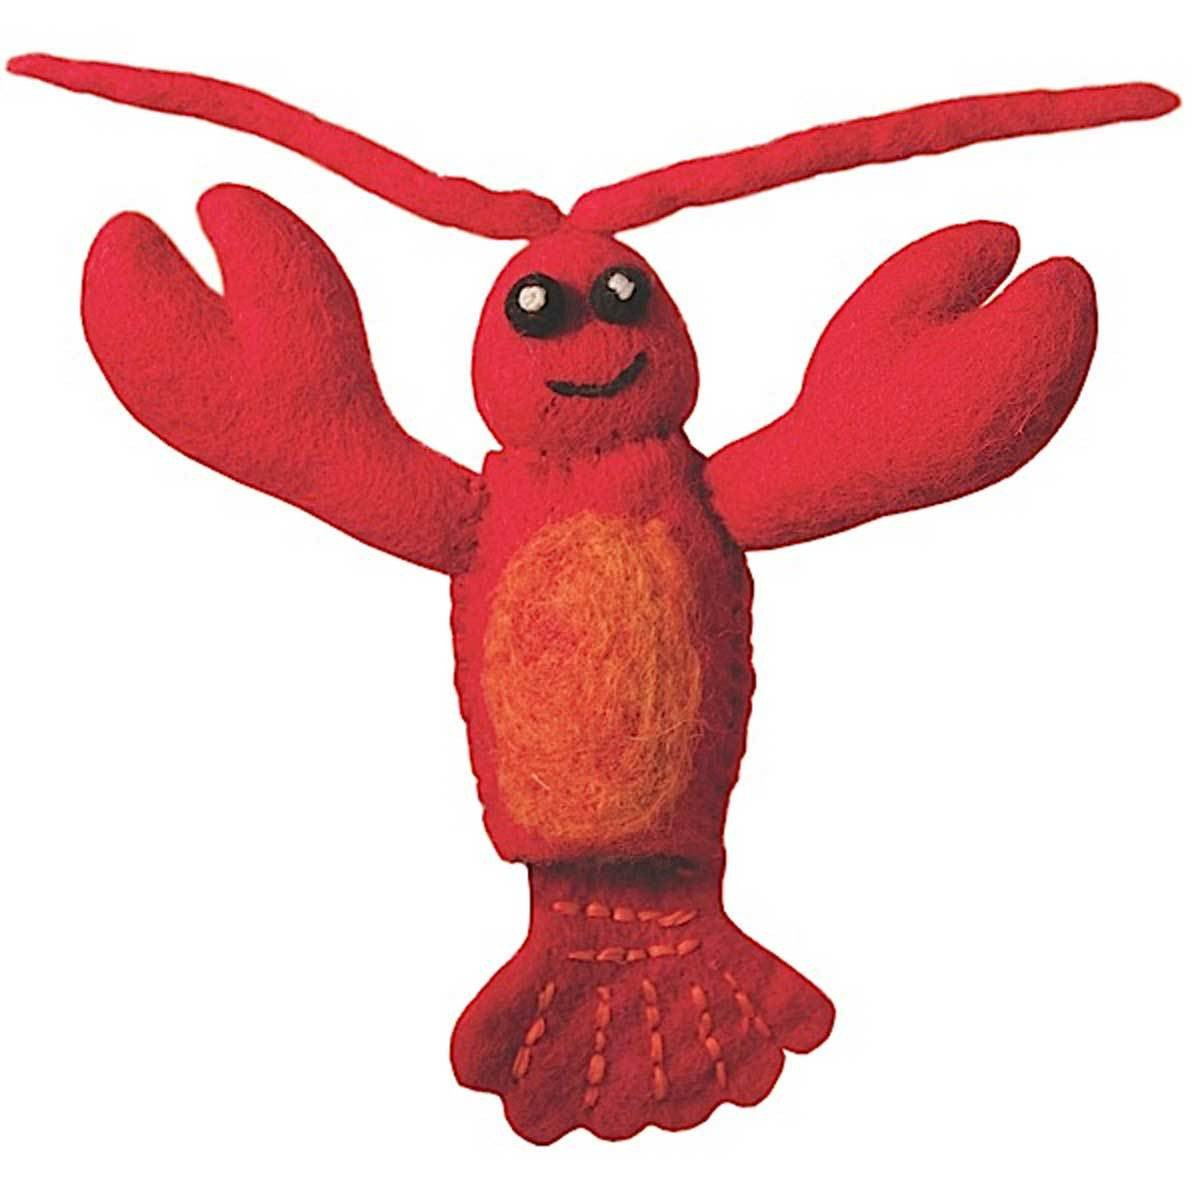 Woolie Finger Puppet - Lobster - Wild Woolies (T) - Good World Goods